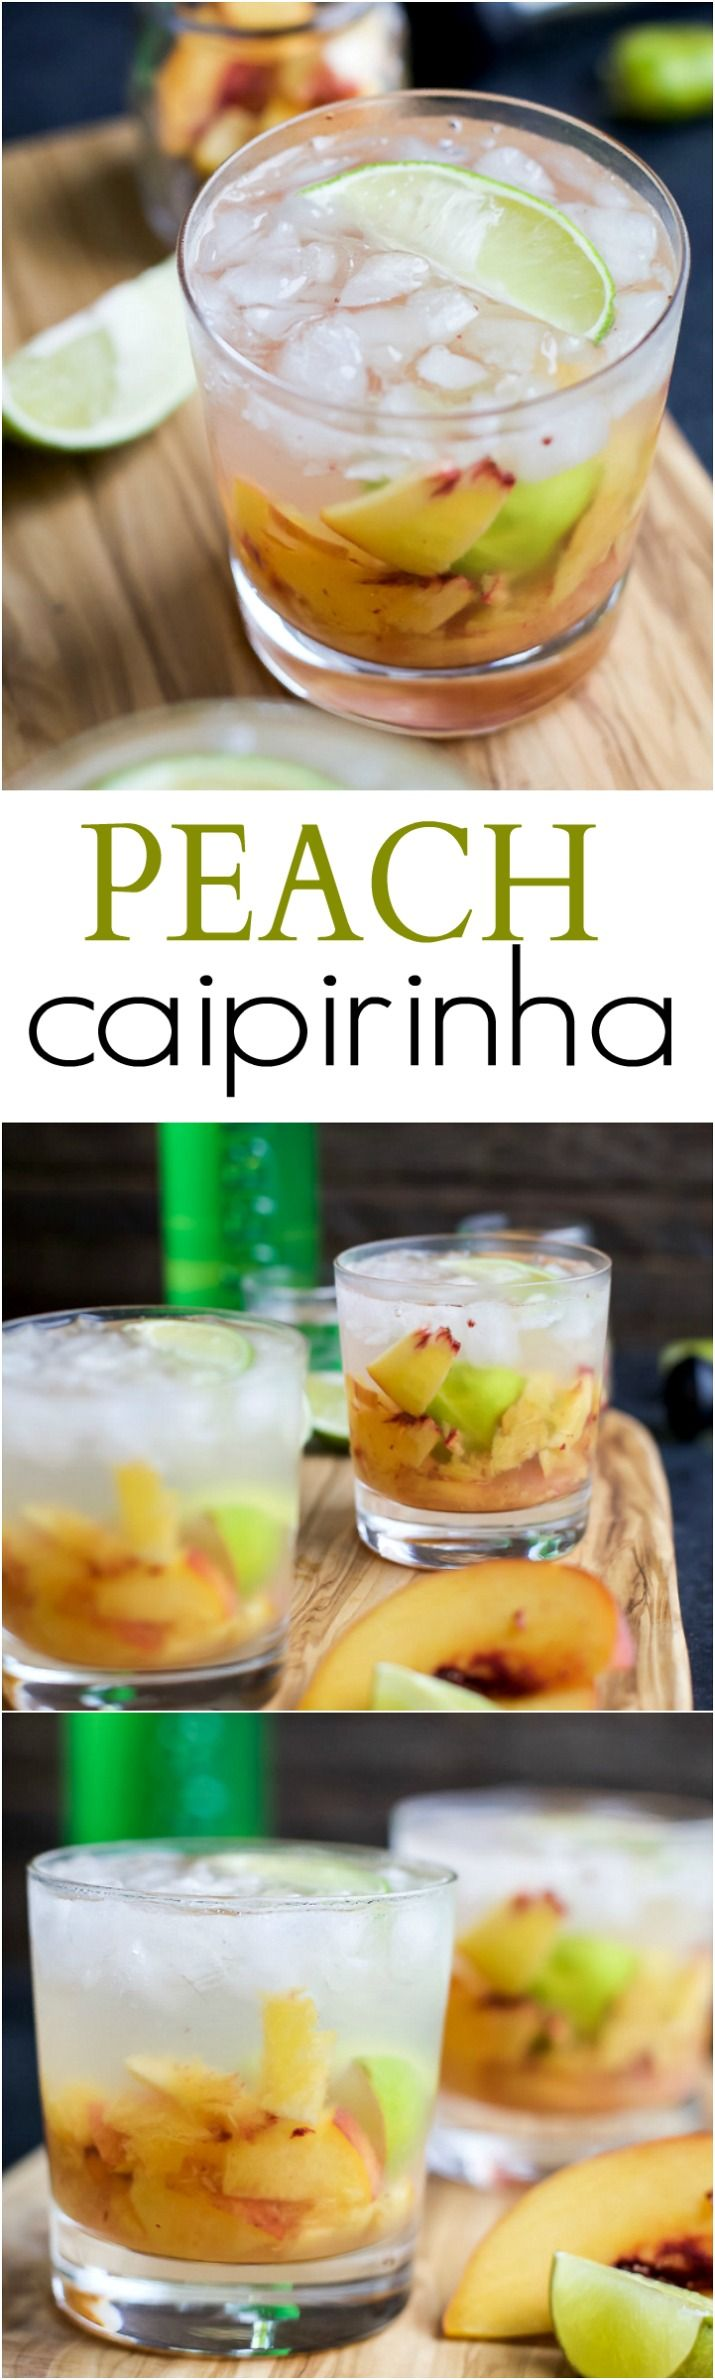 Brazilians know how to make a cocktail! Perfectly refreshing and easy to make - this Peach Caipirinha is hands my drink of choice! | joyfulhealthyeats.com